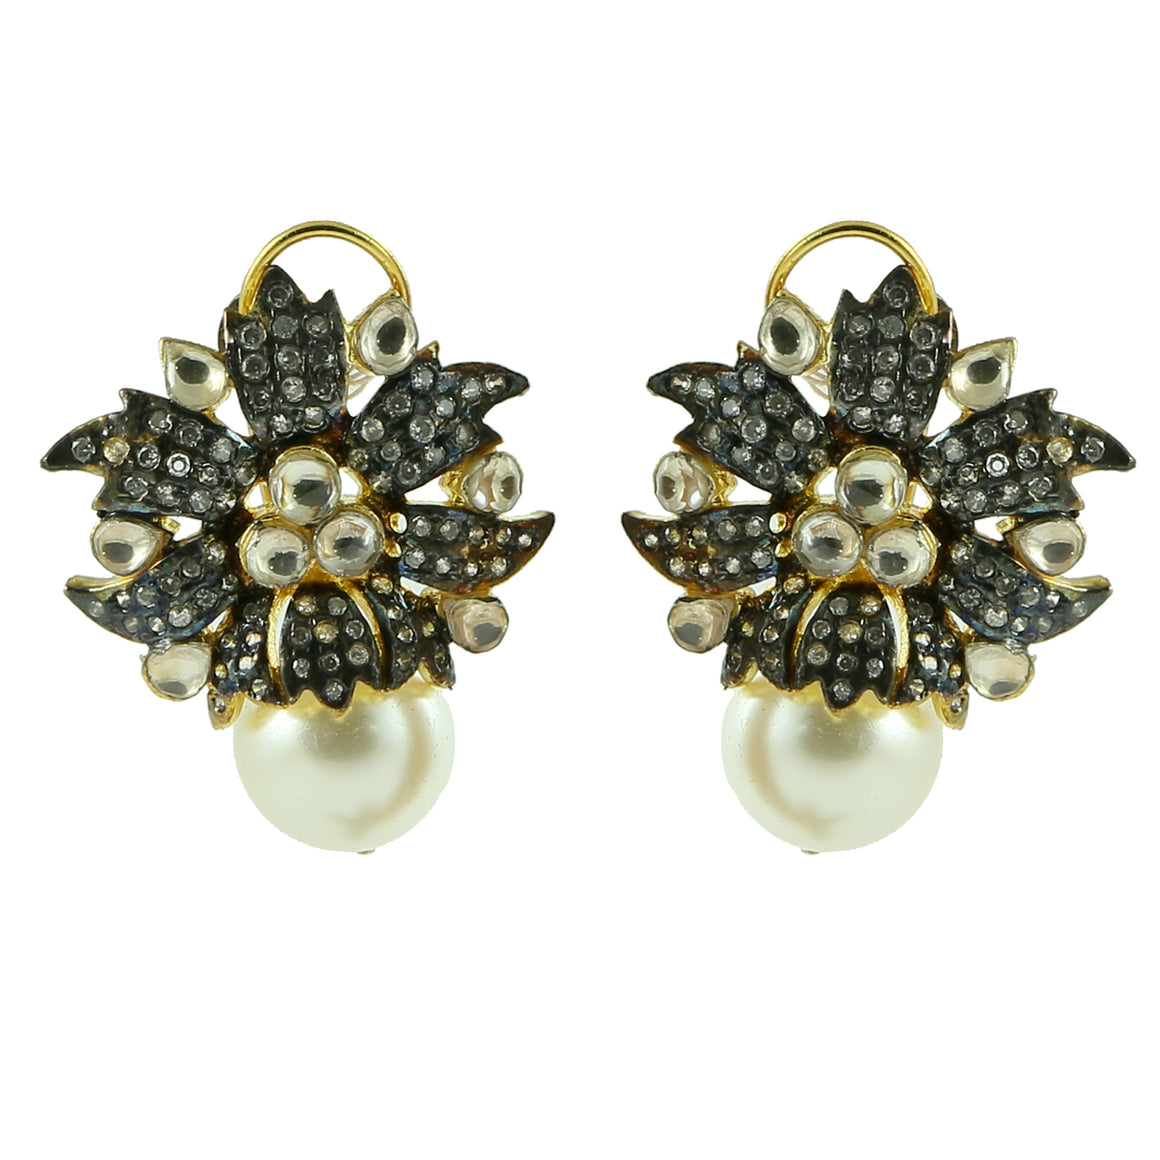 Allure by MHT - Starlet Earring